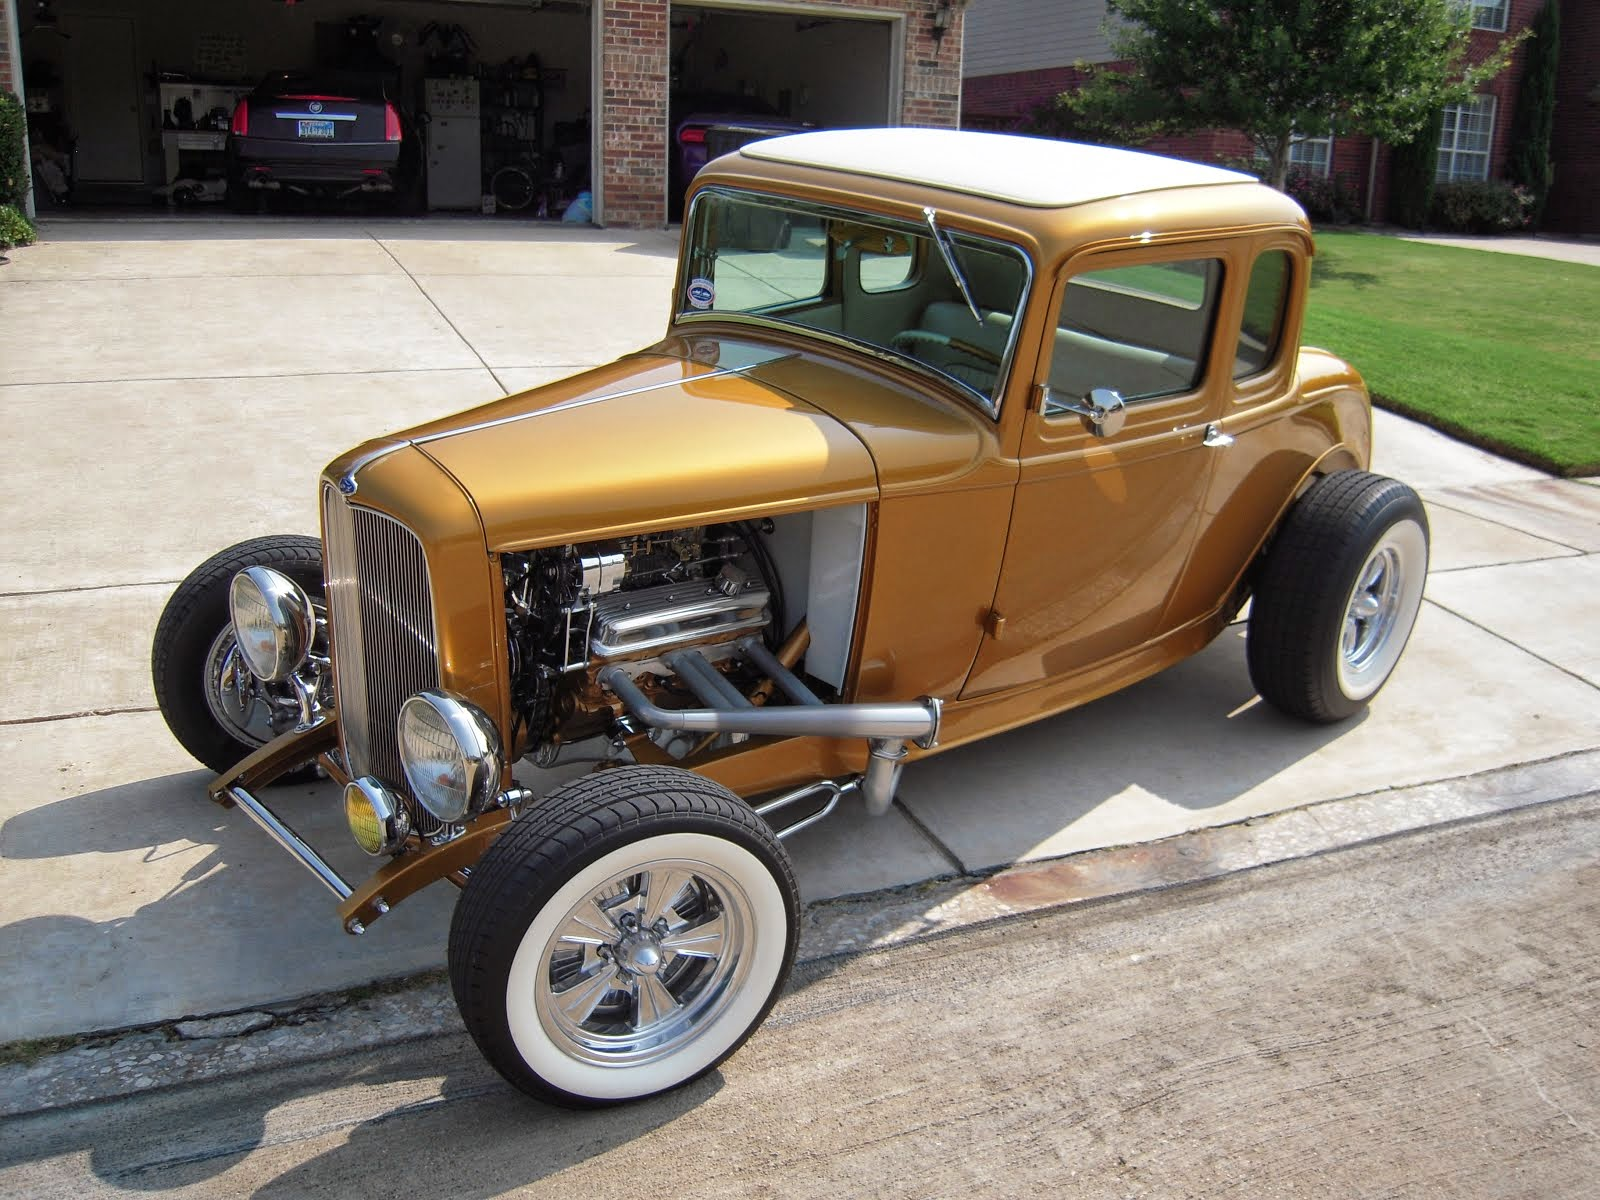 My old 1932 Ford Five Window Coupe